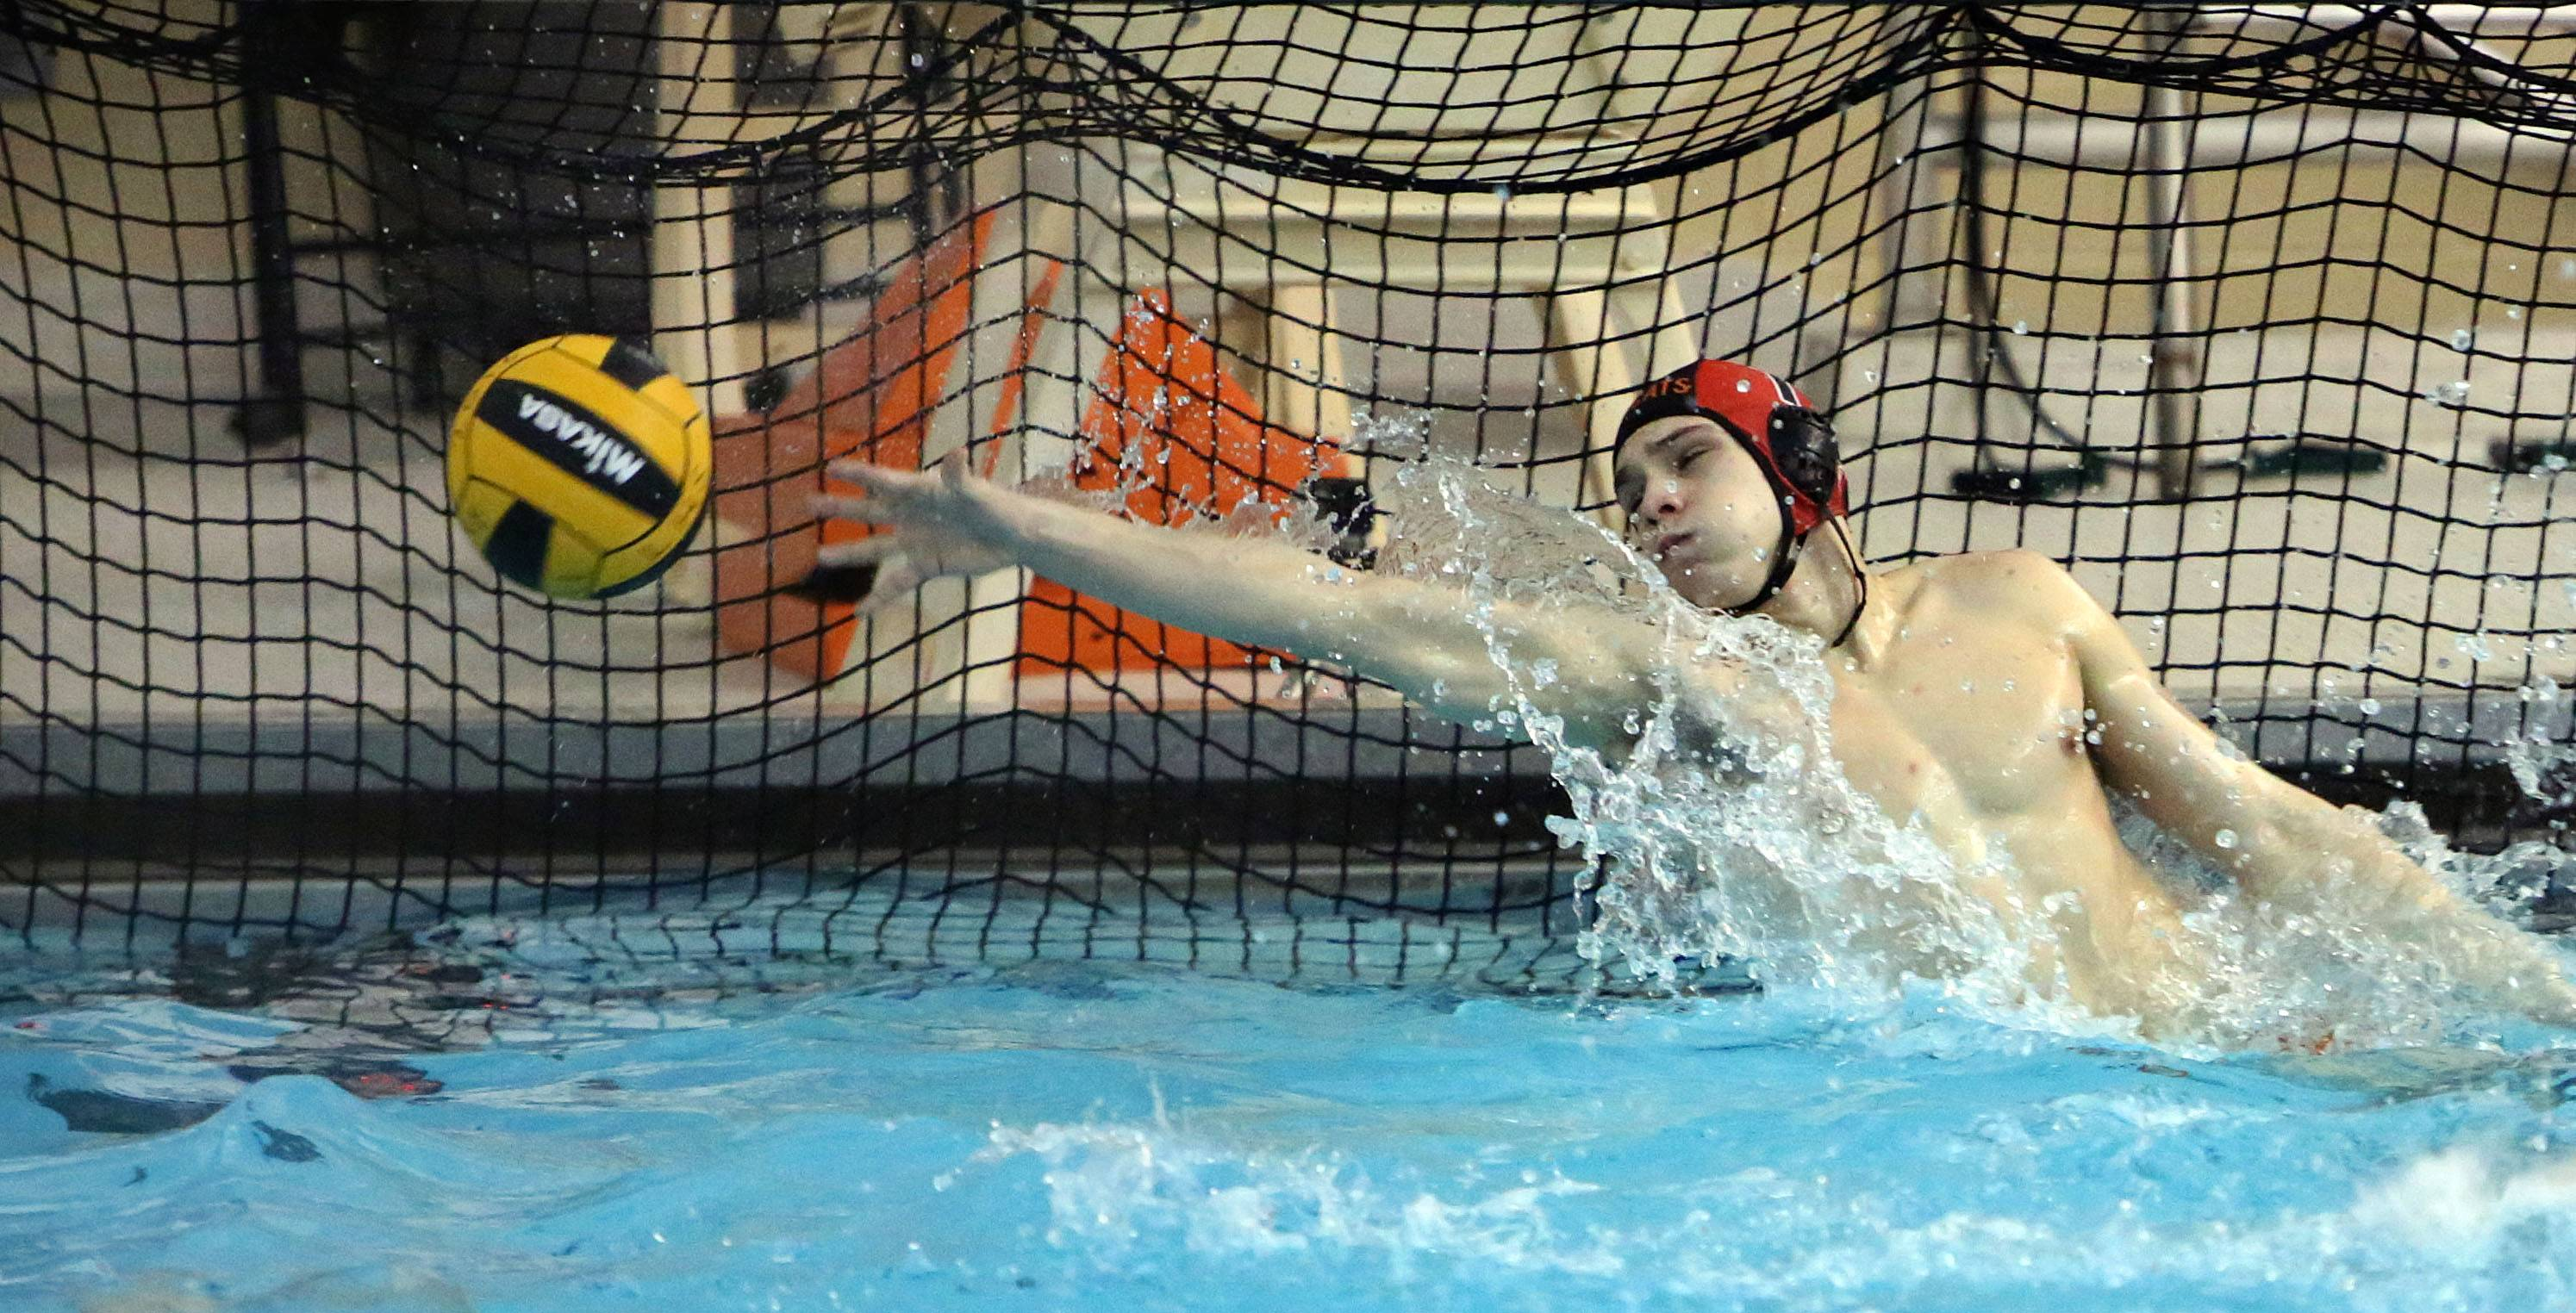 Libertyville's Andrew Fink makes a save against Deerfield on Tuesday at Libertyville High School.